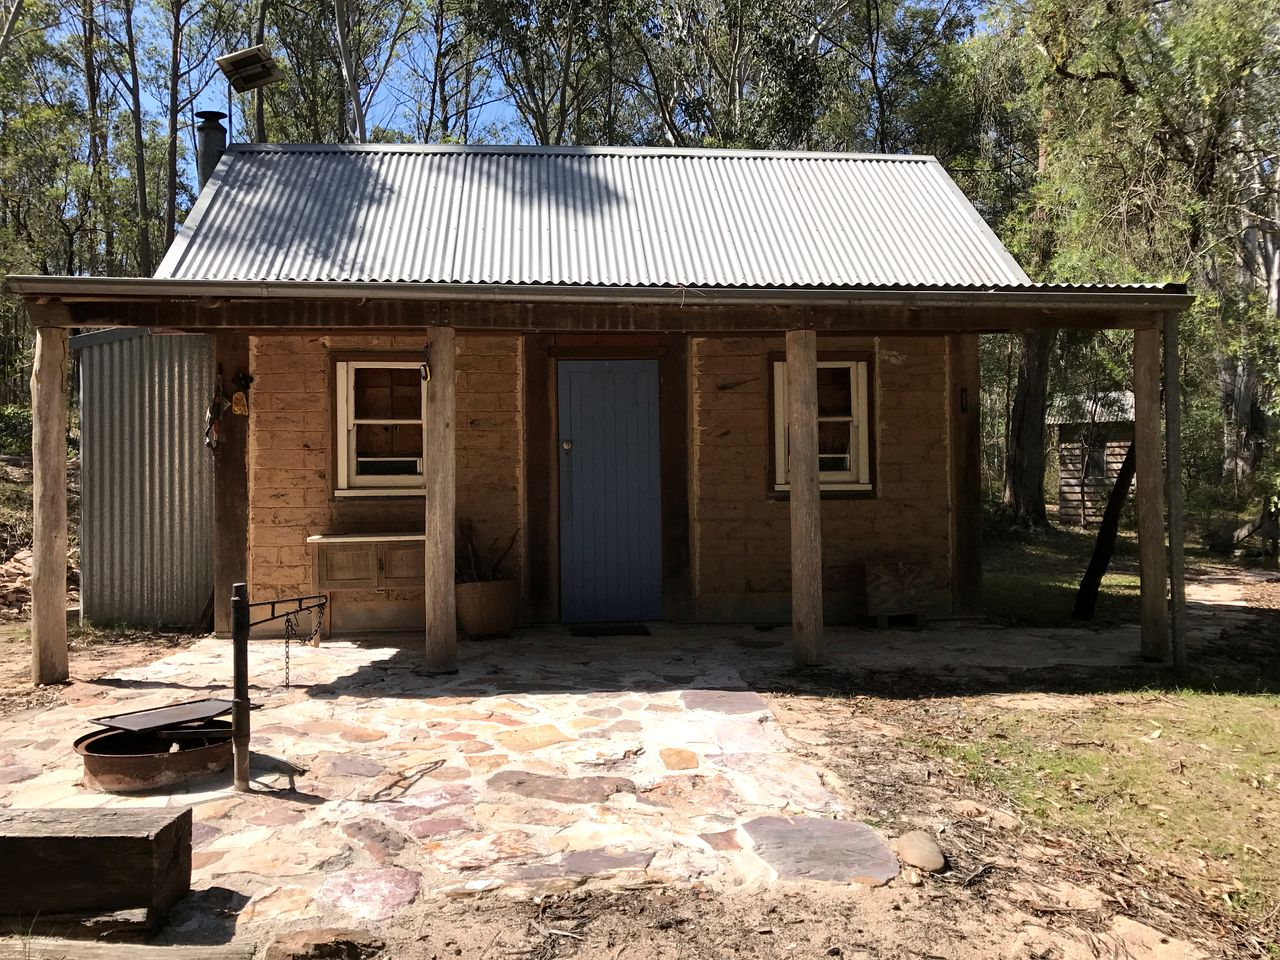 Cottages (Deua River Valley, New South Wales, Australia)